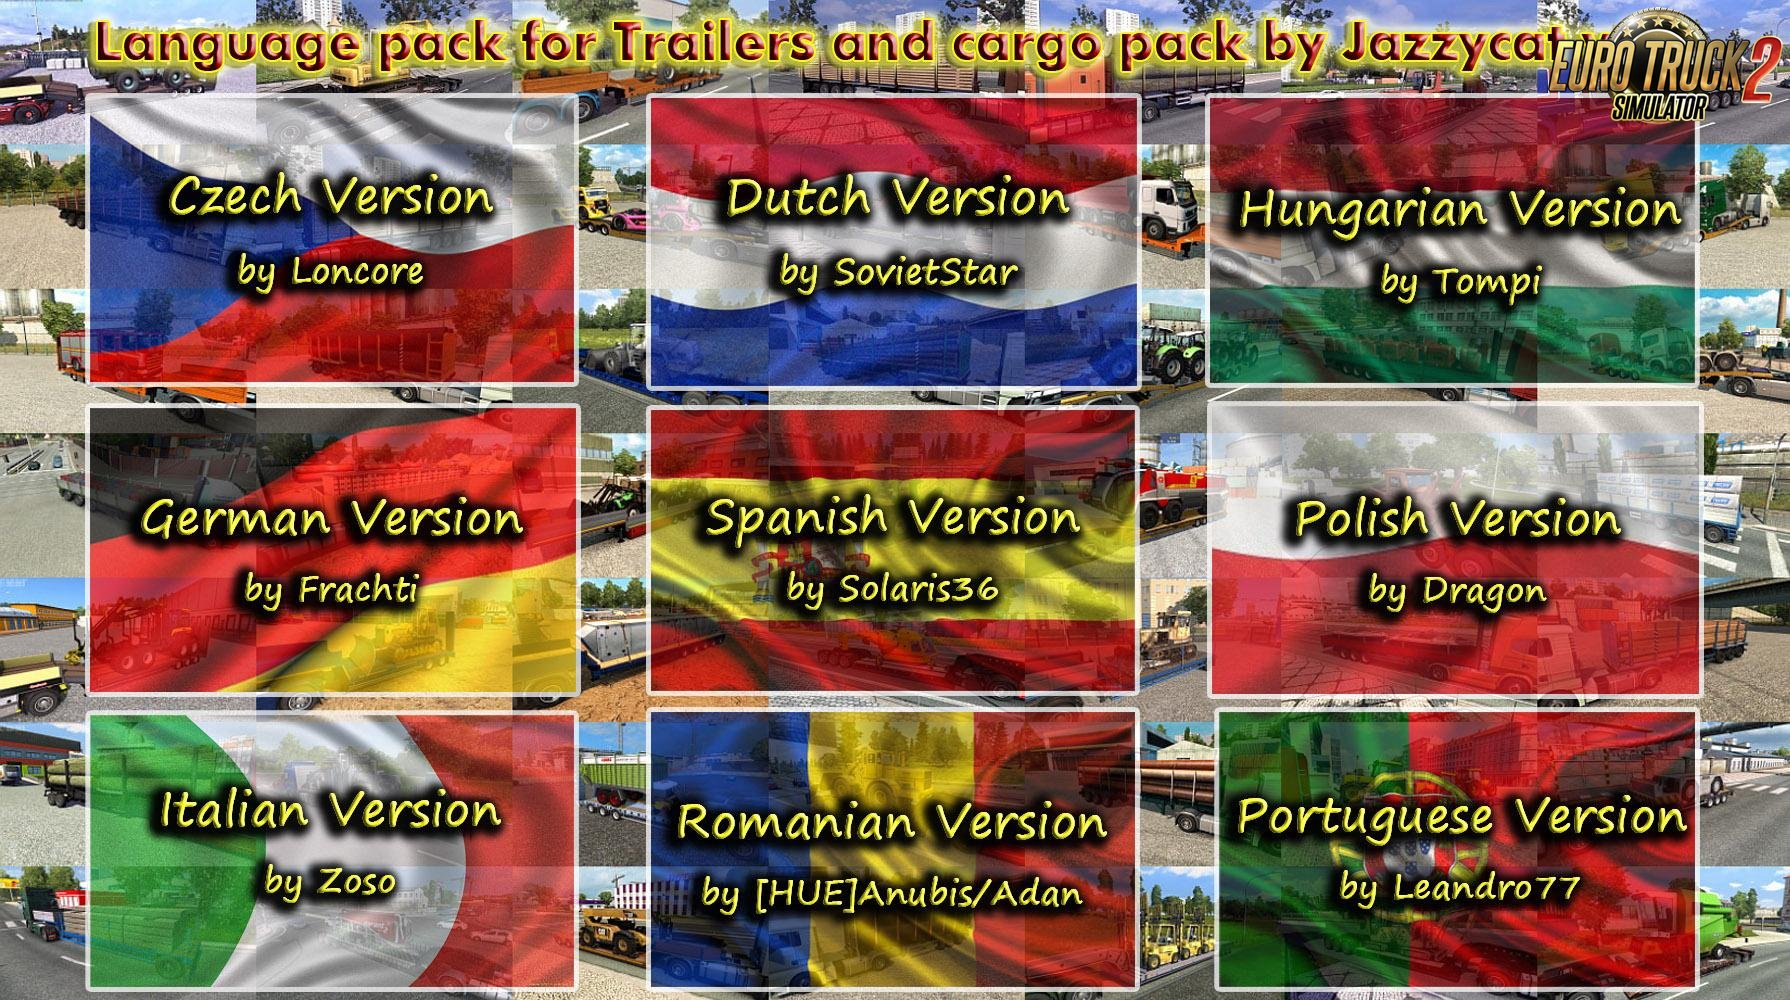 Language Pack for Trailers and Cargo Pack (Update) v4.2 by Jazzycat